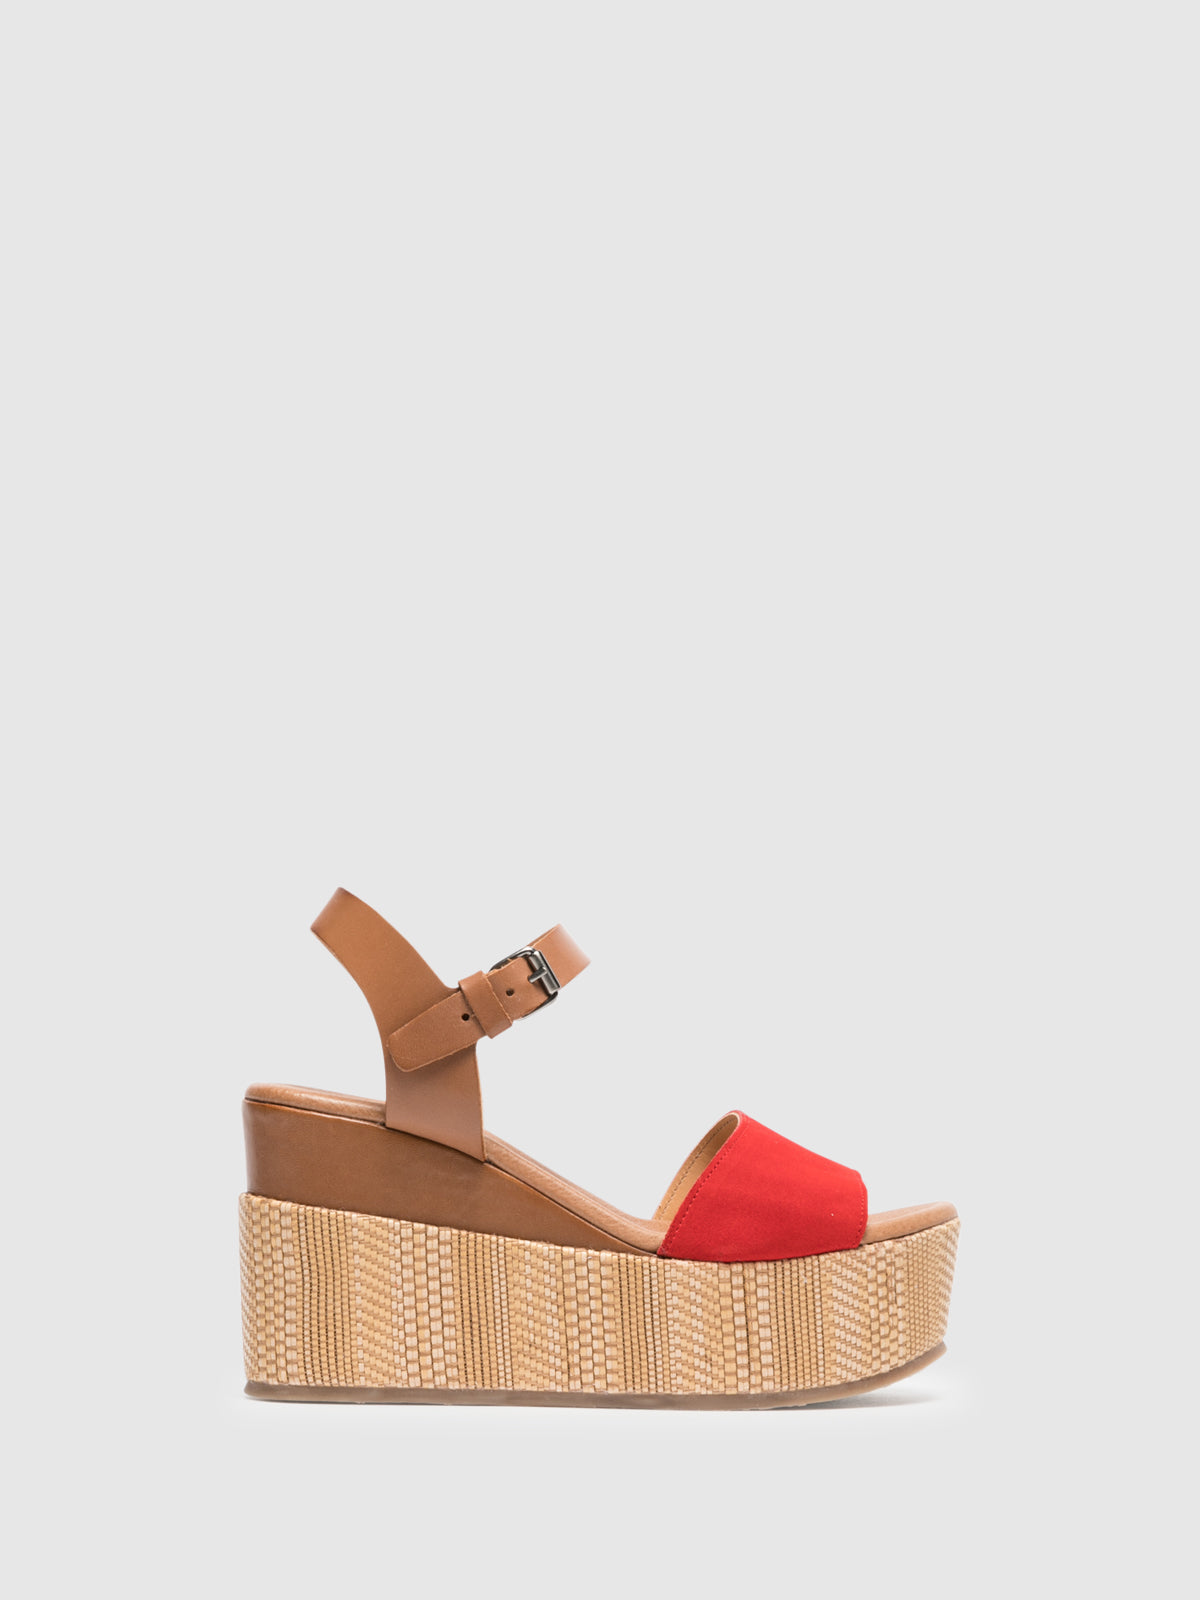 Clay's Sandalen mit Plateauabsatz in Rot